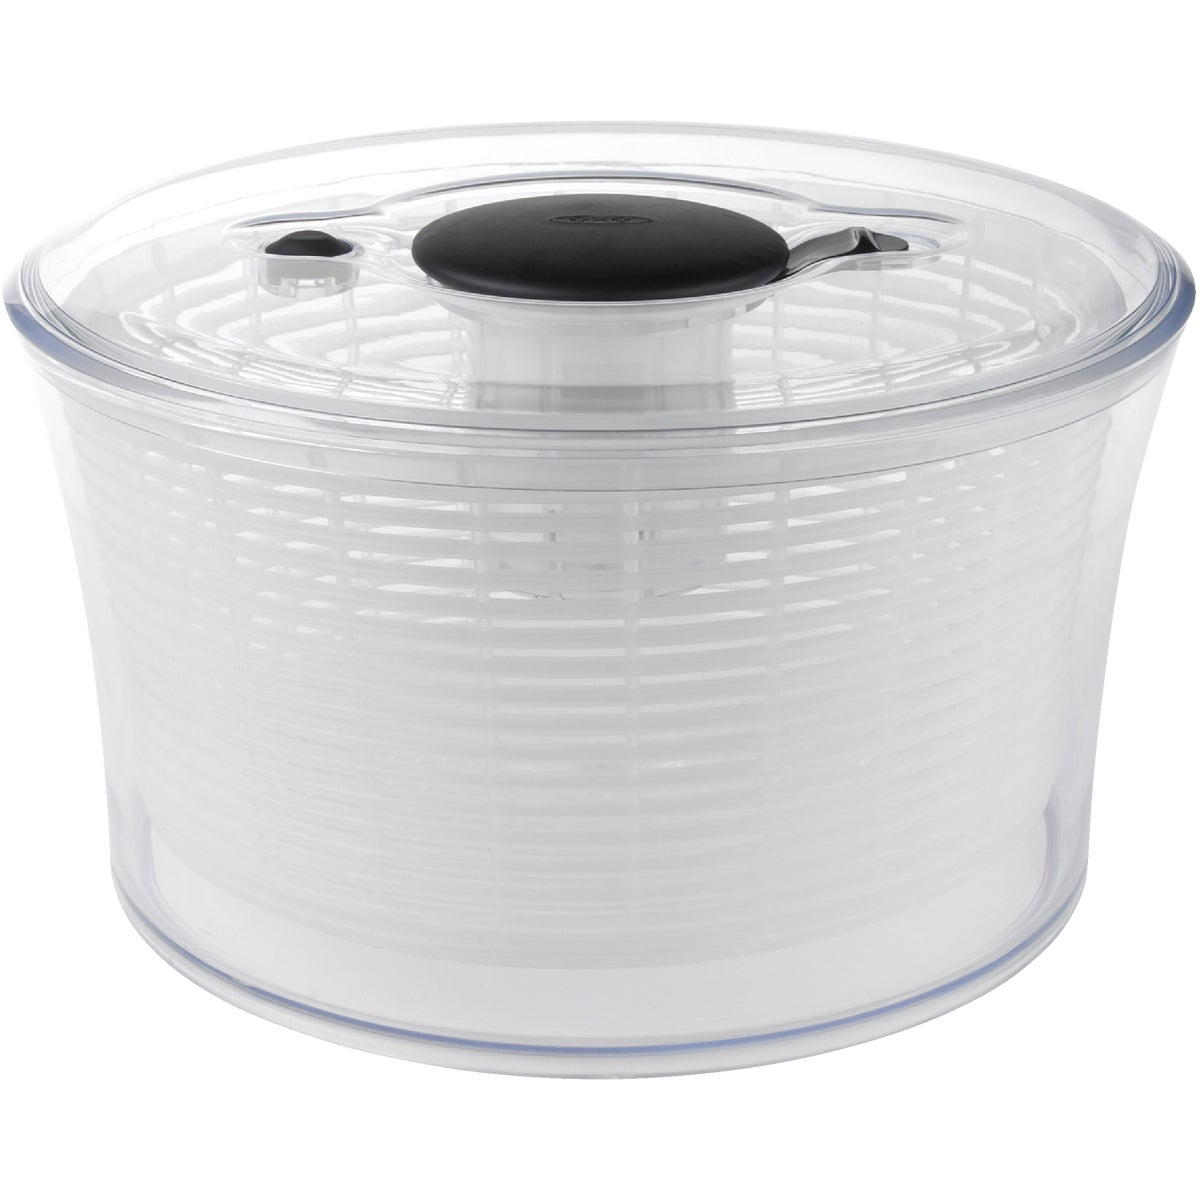 SALAD SPINNER - 32480 by Oxo International